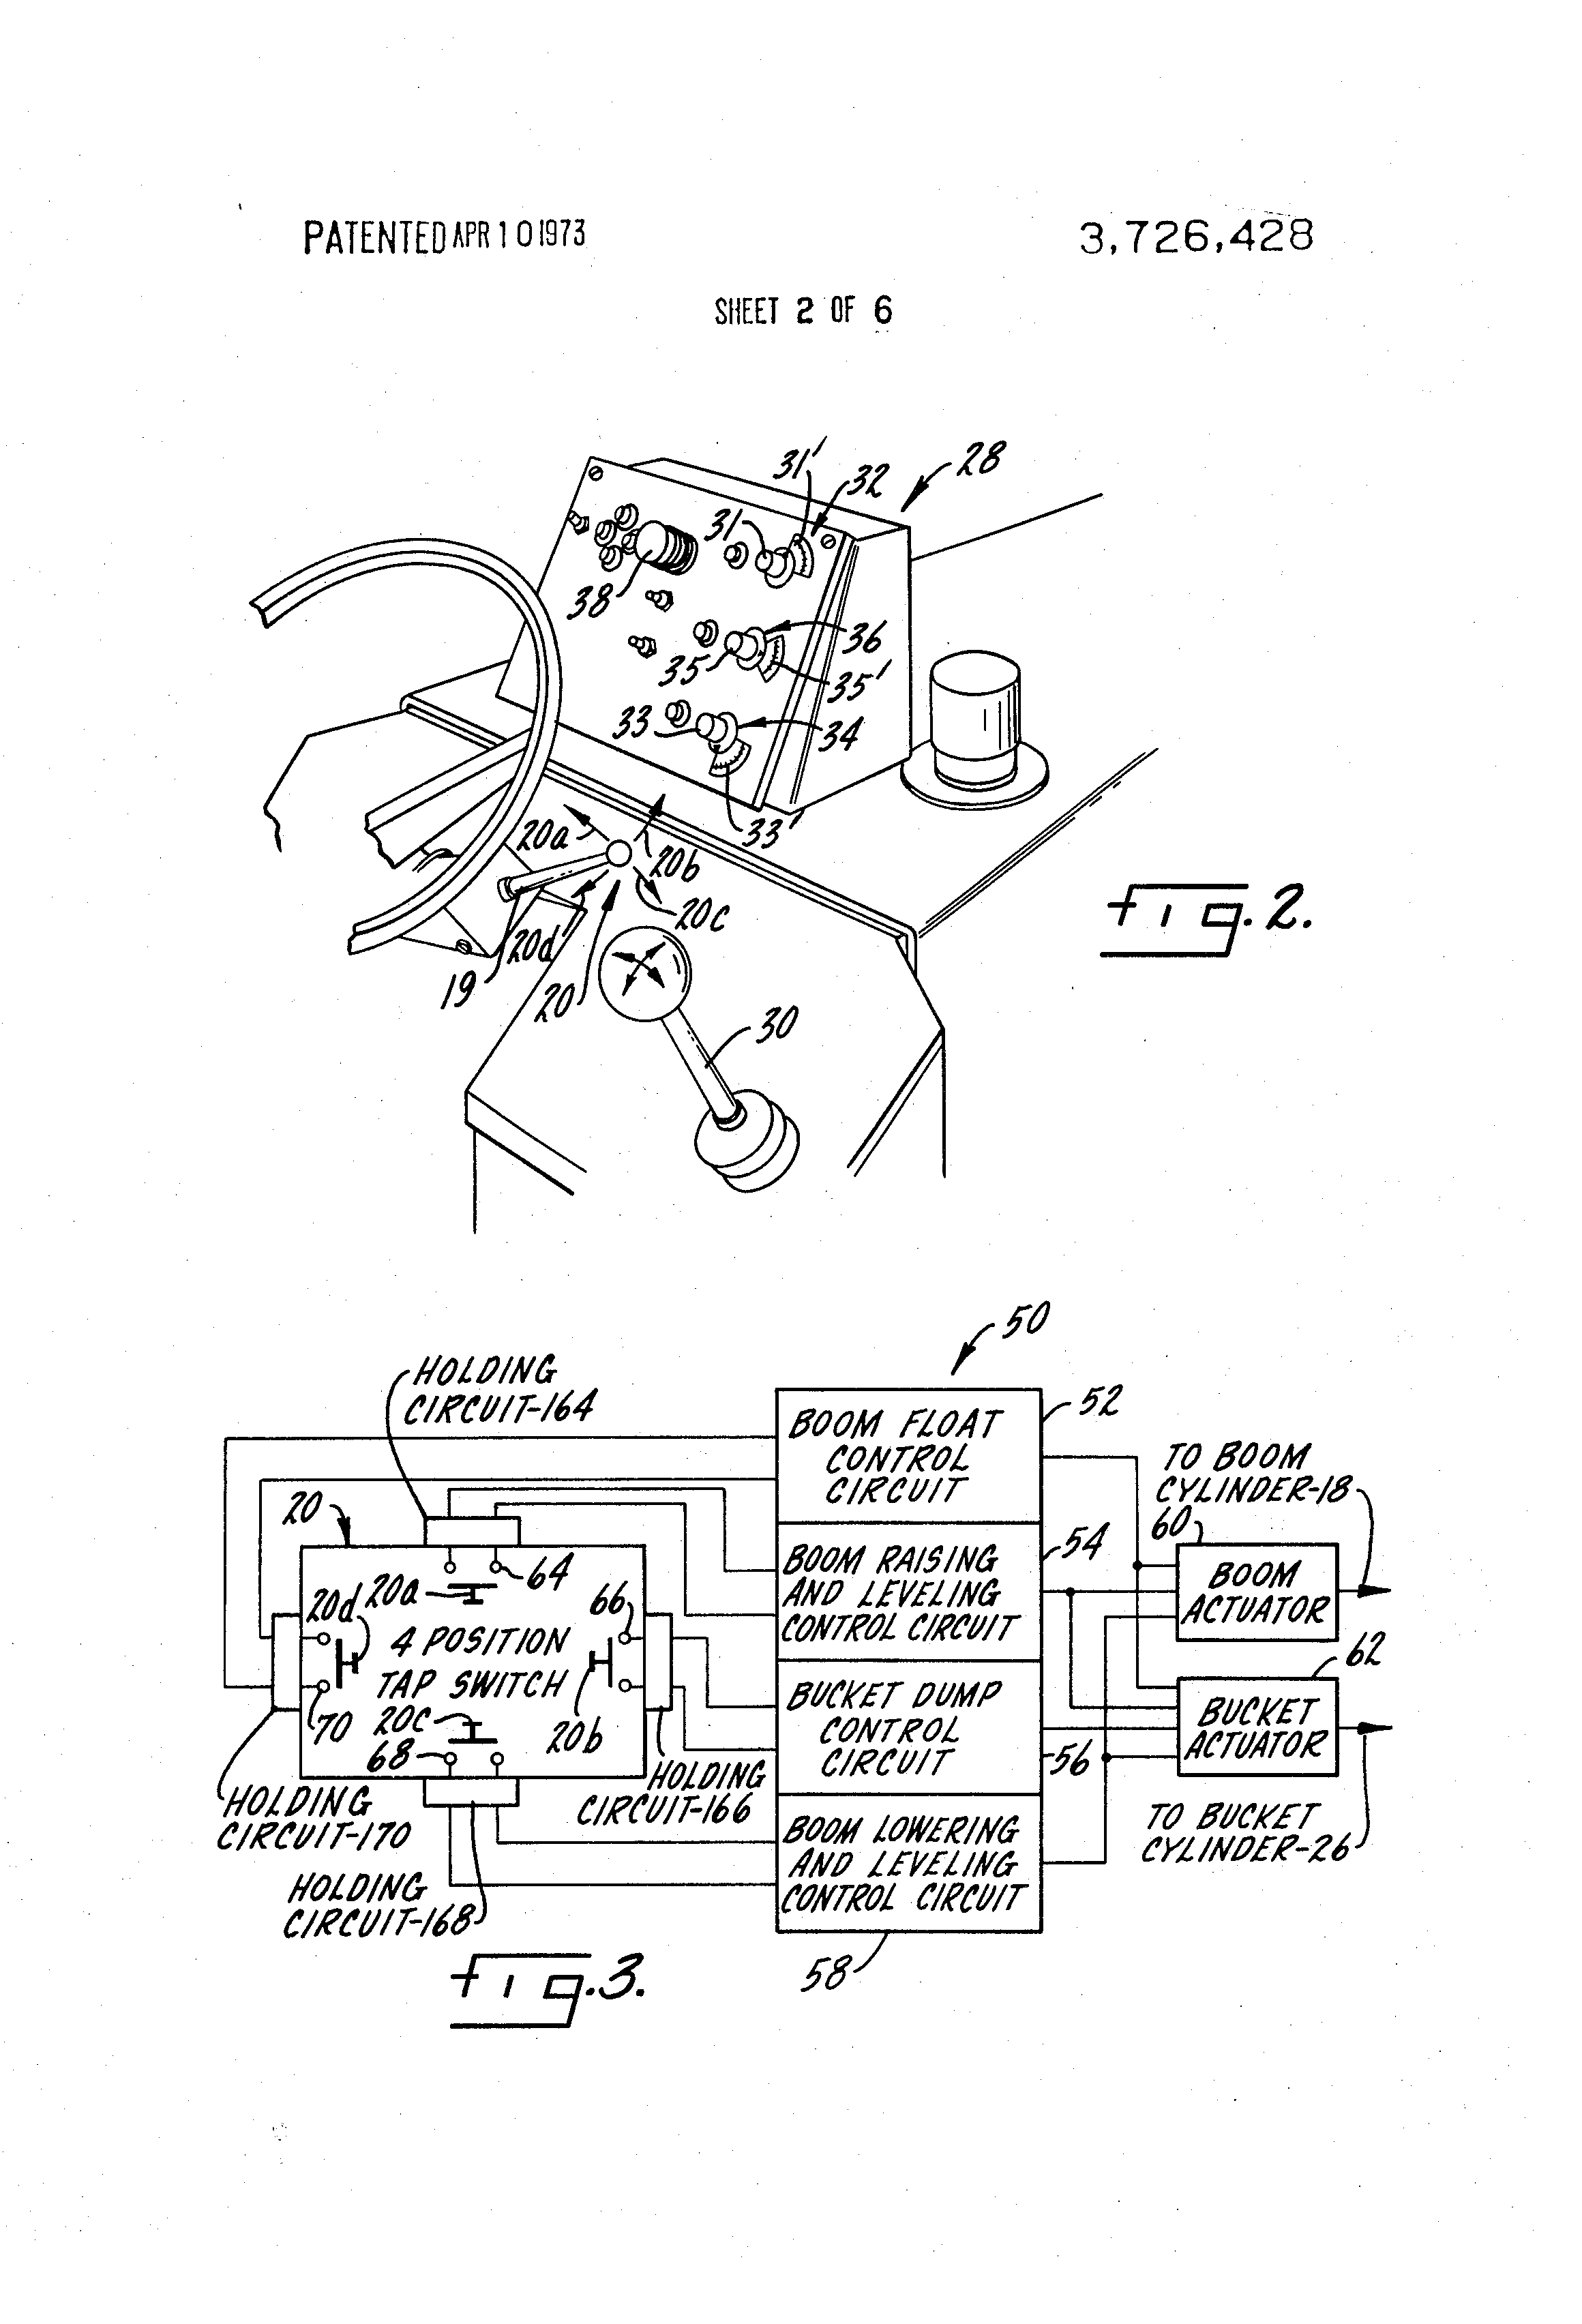 US3726428 2 patent us3726428 control circuit for front end loader google  at eliteediting.co